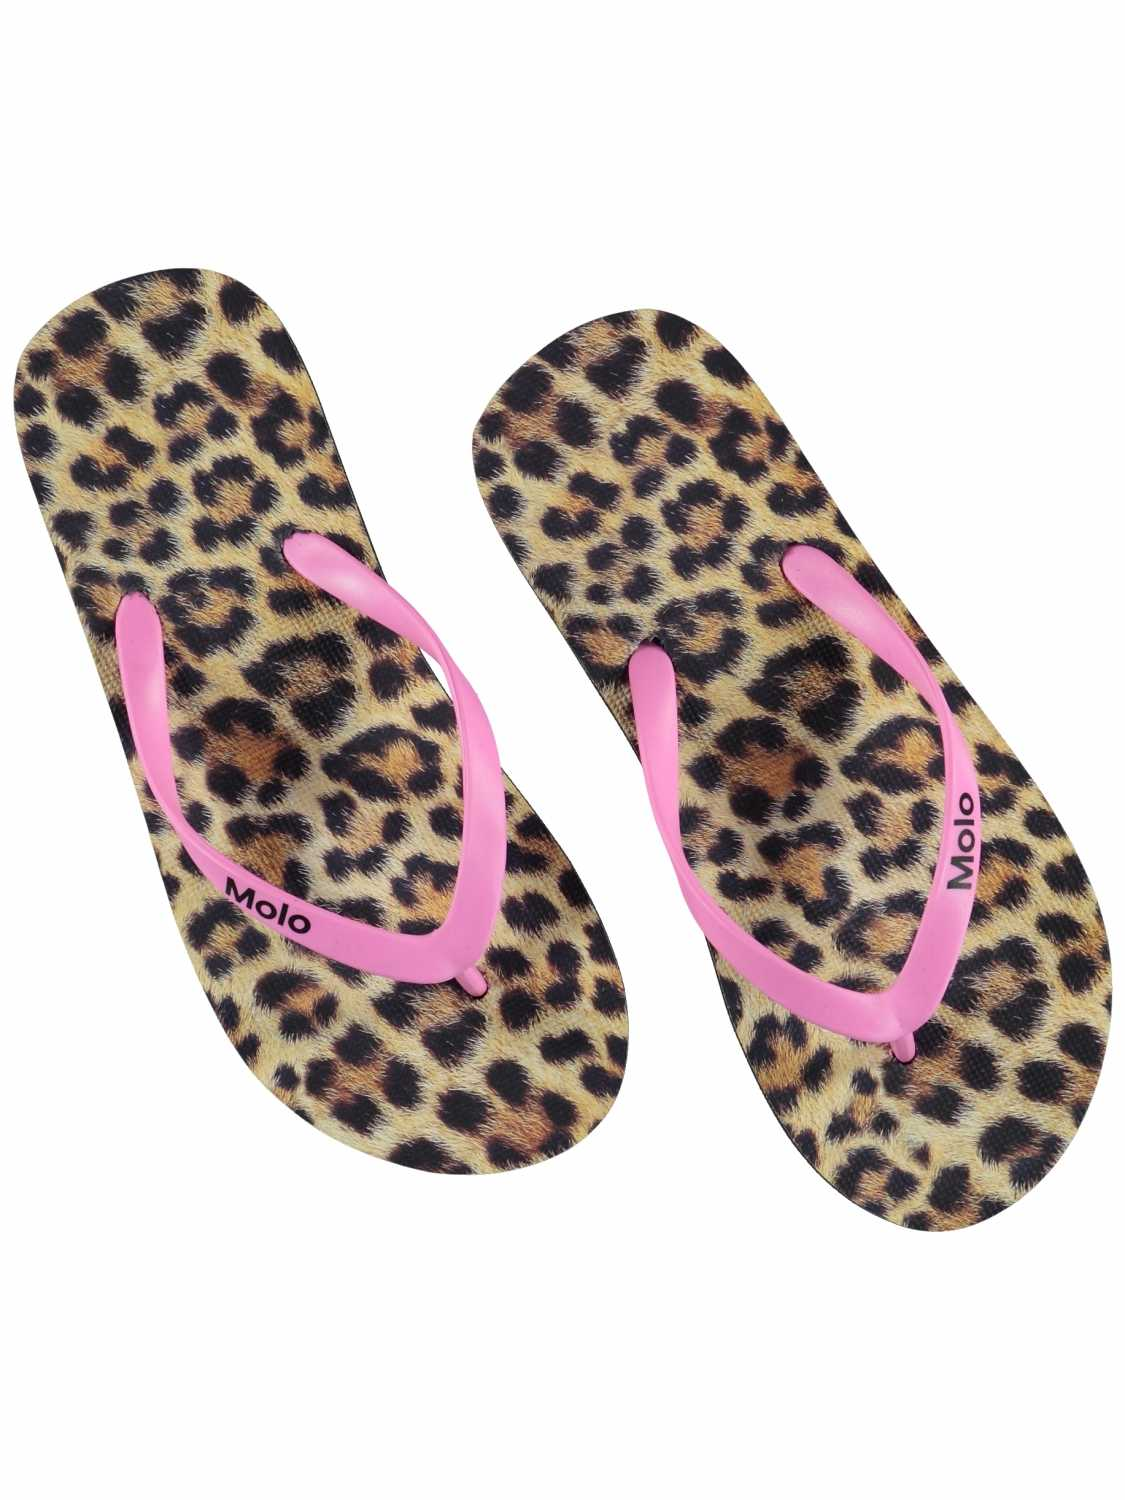 Molo Slippers - meisjes - All over print -